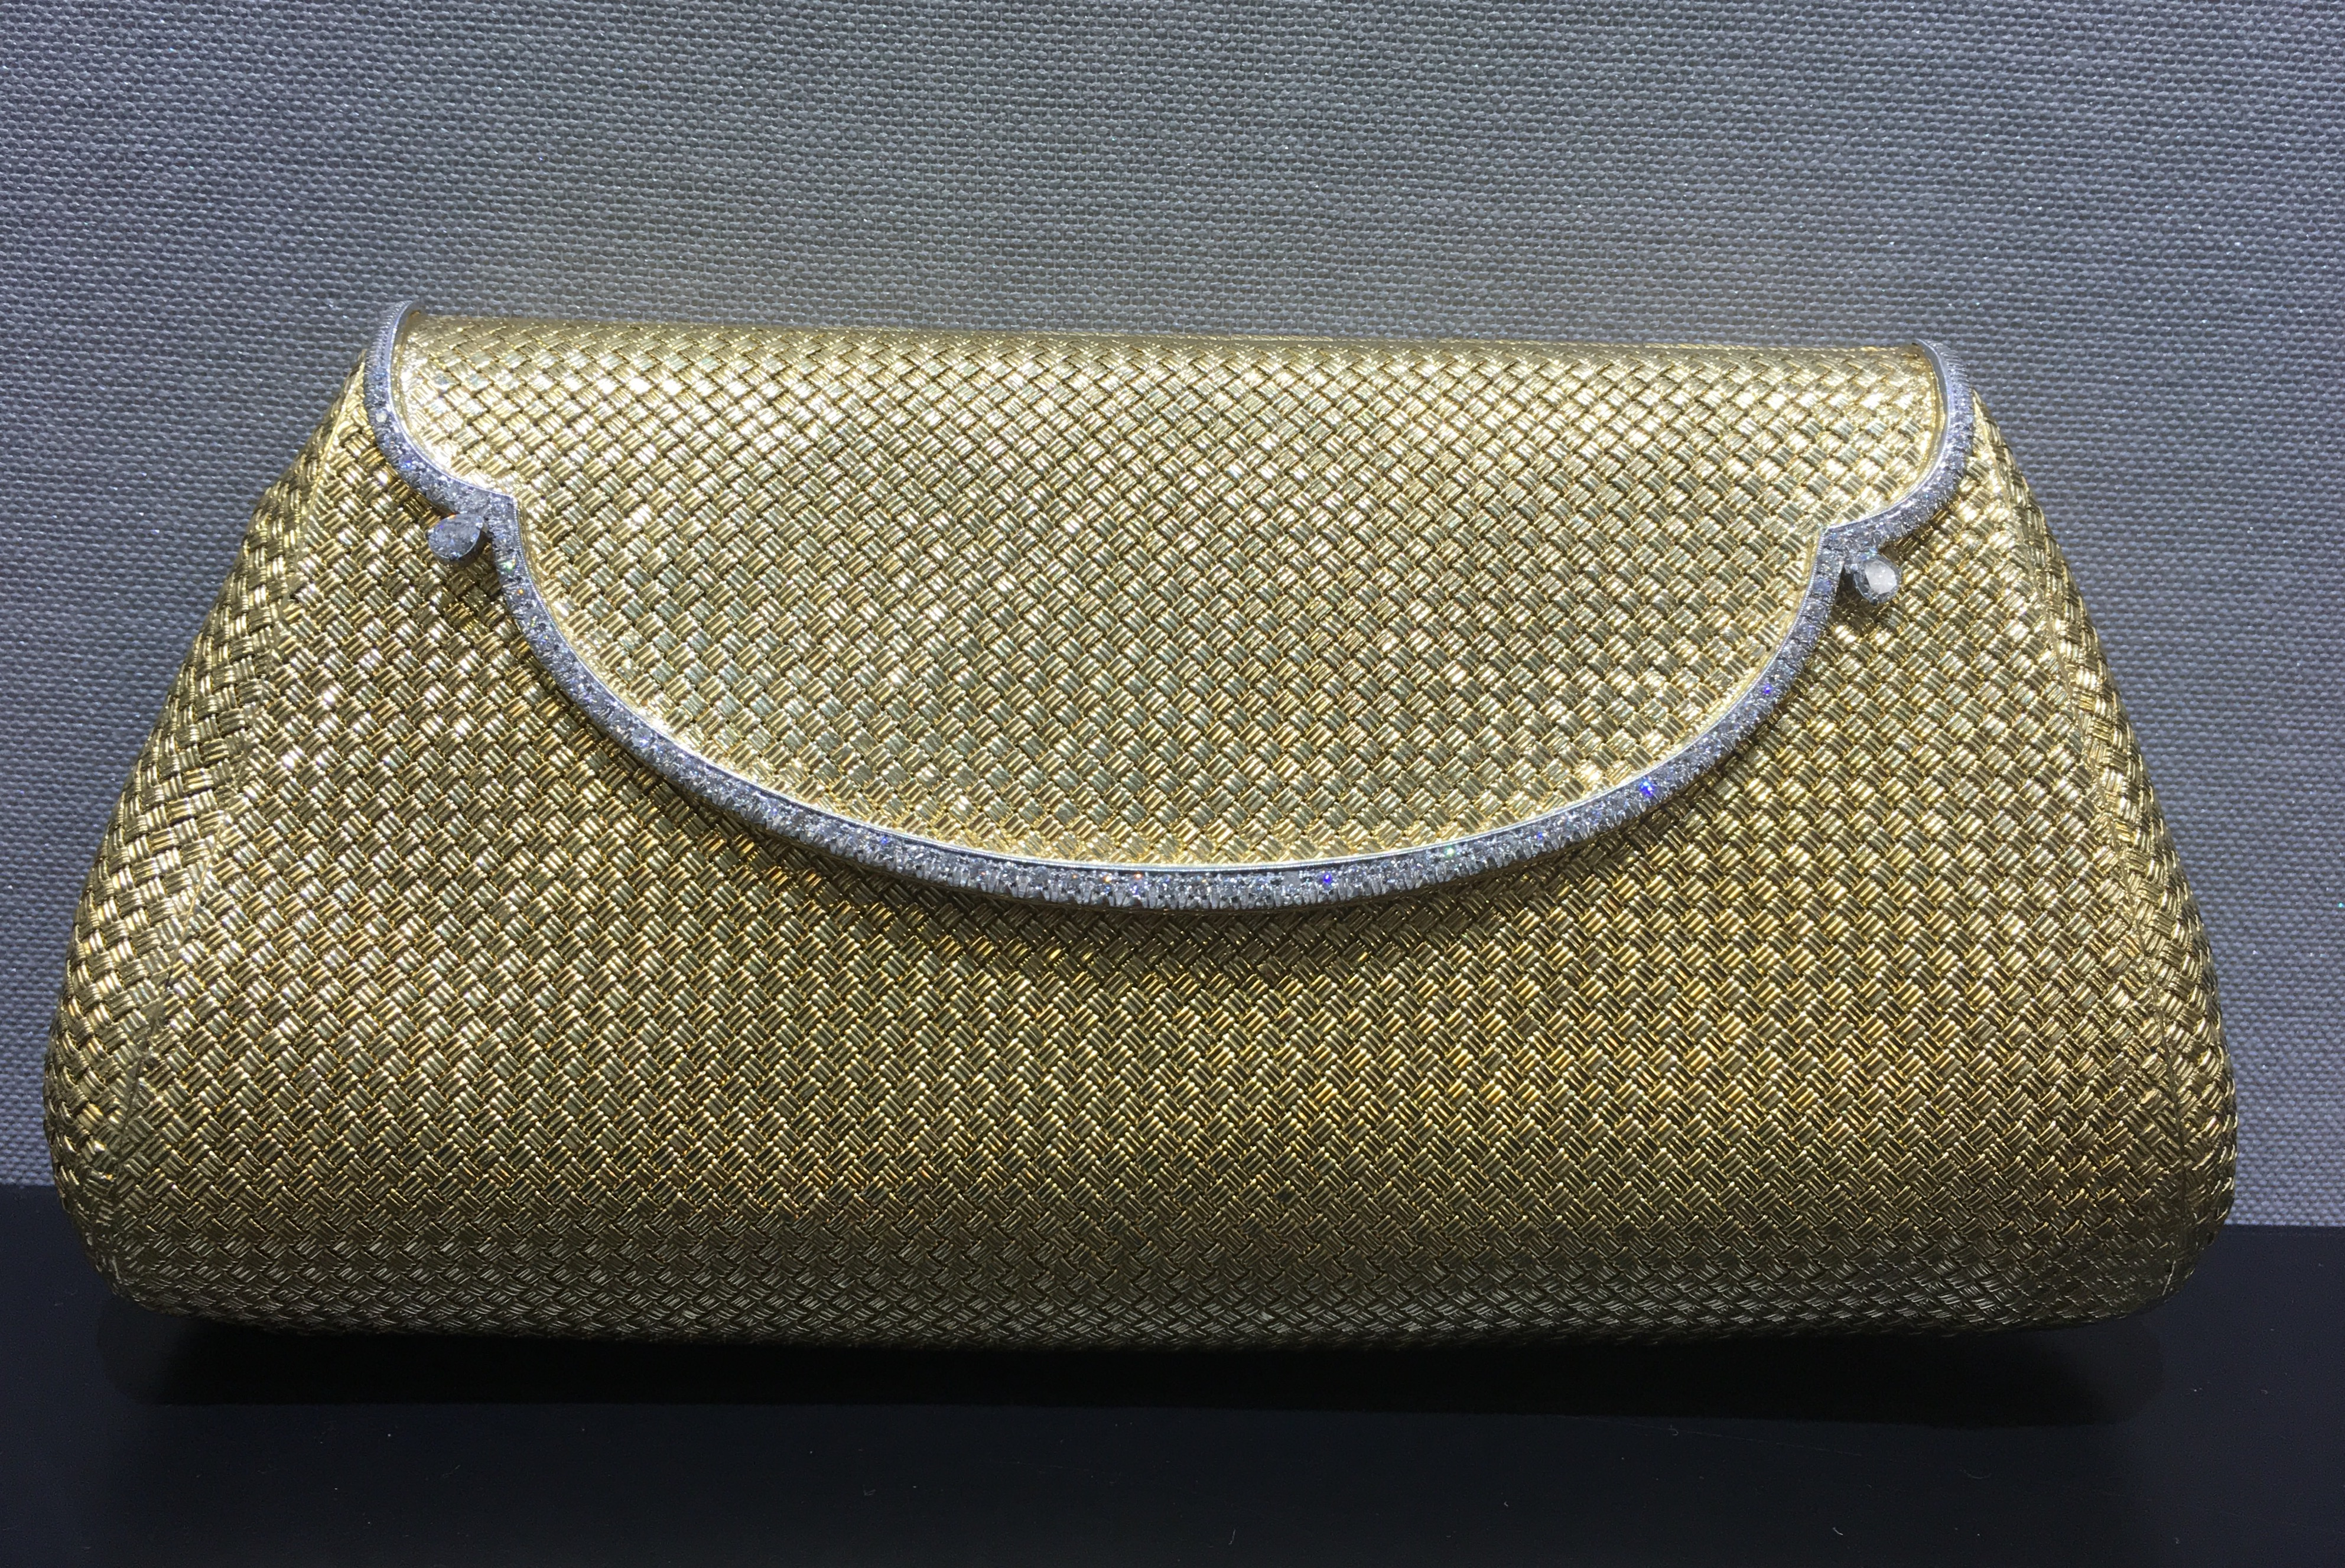 Bulgari 18K yellow gold vintage clutch